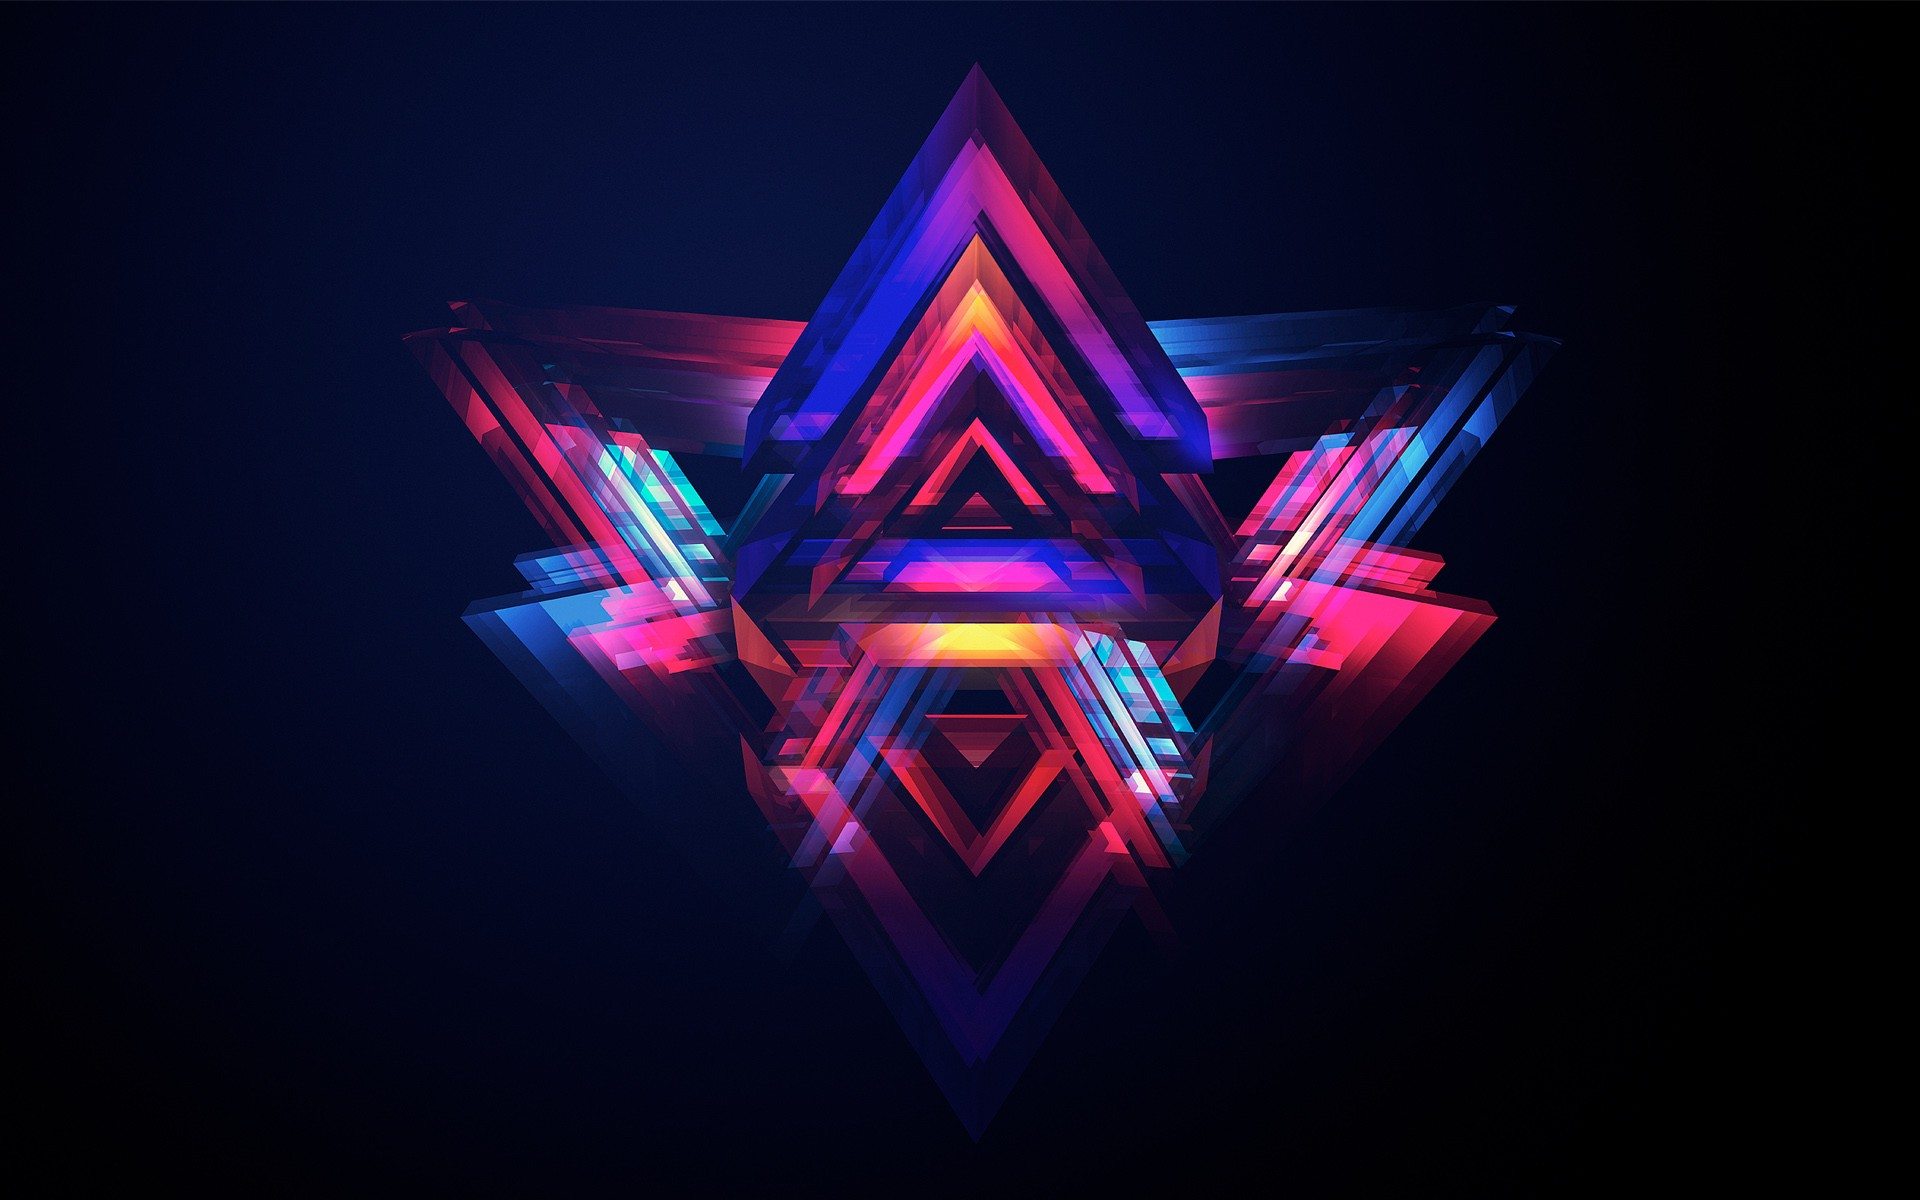 abstract pyramids, hd abstract, 4k wallpapers, images, backgrounds